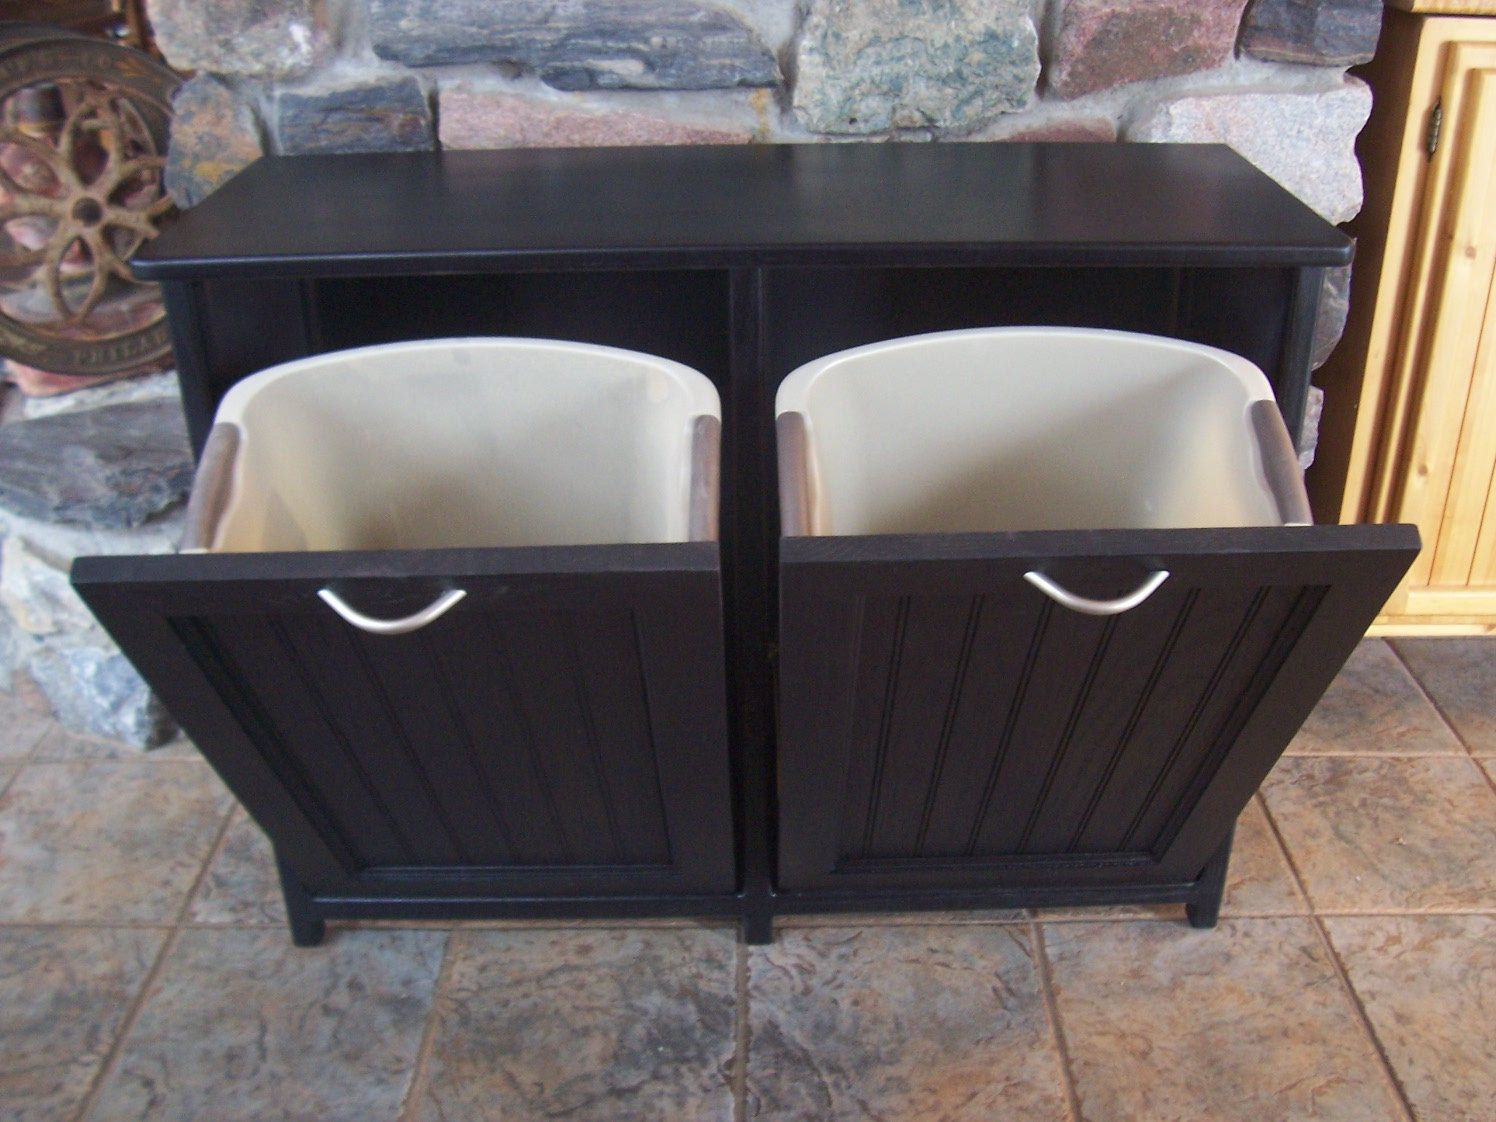 Best 25 Trash Can Cabinet Ideas On Pinterest Hidden